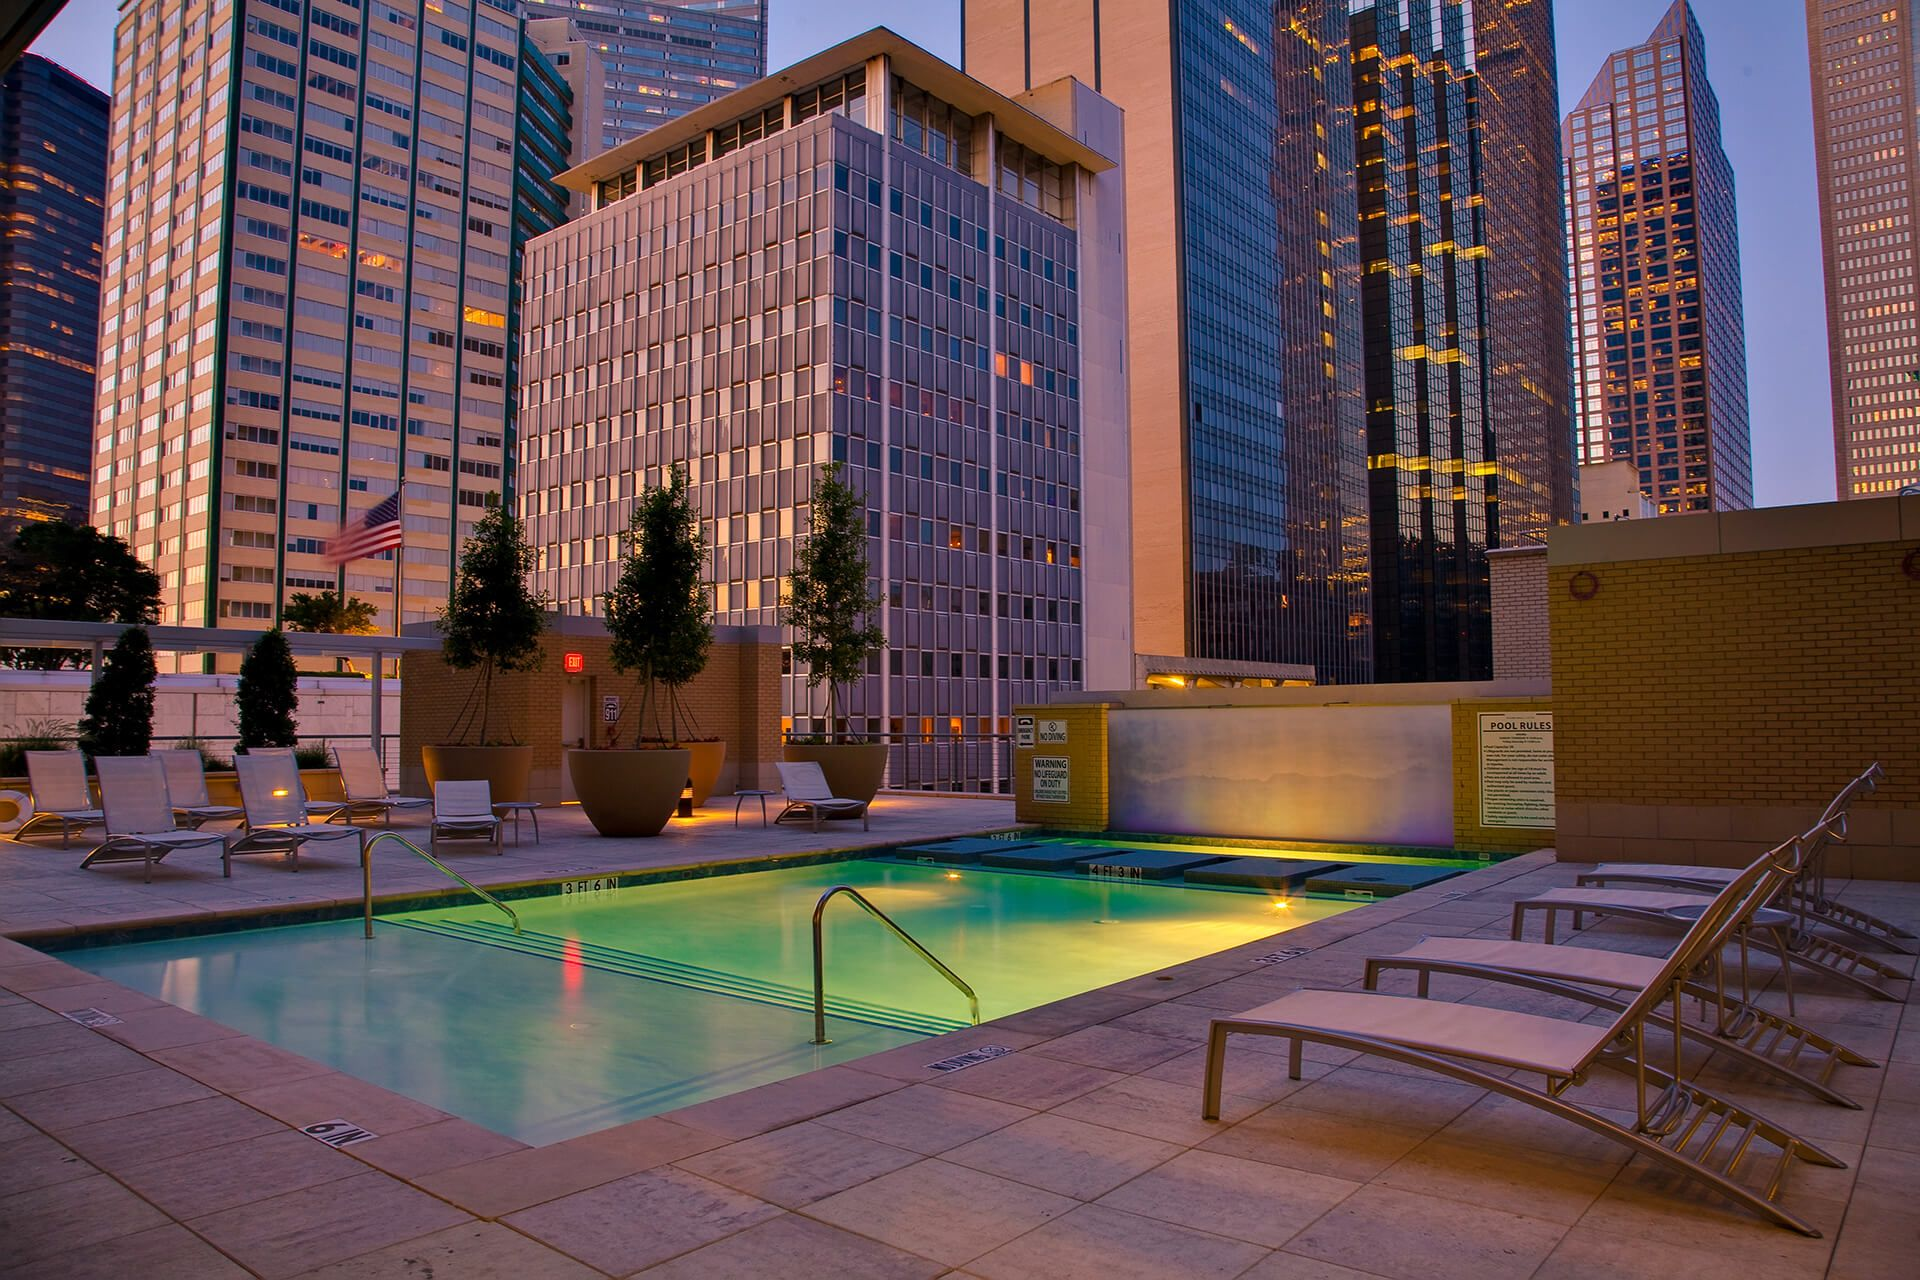 Pool and cityscape